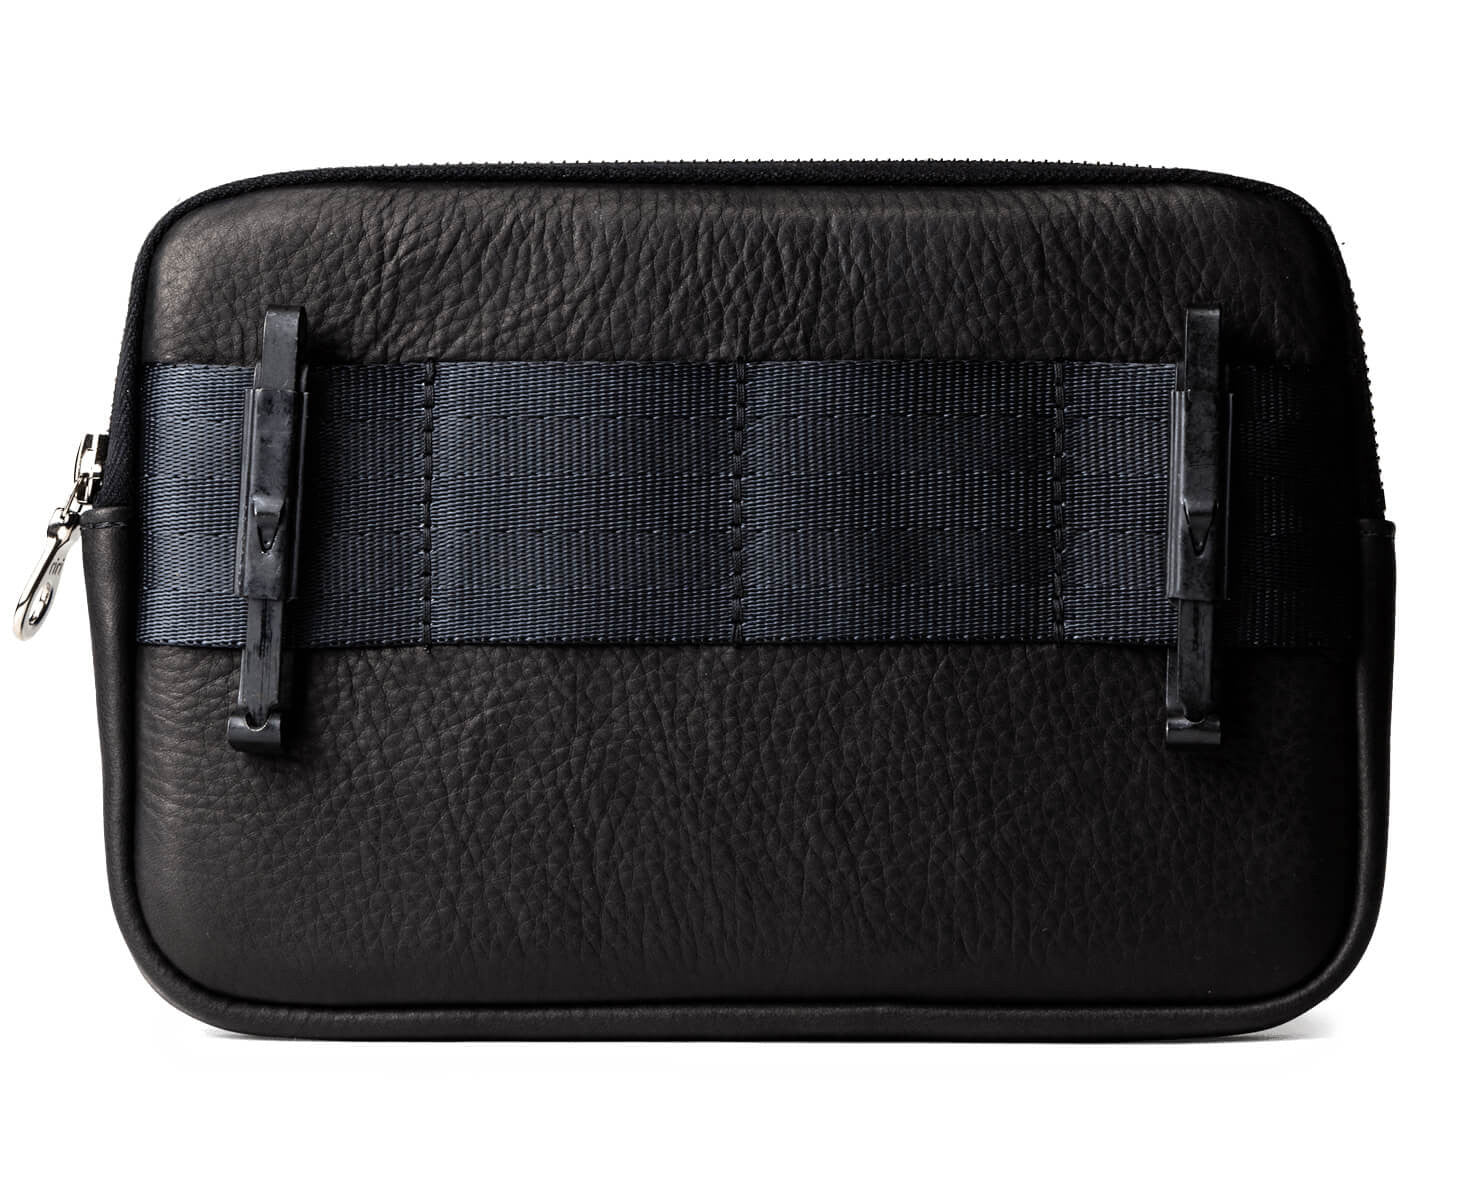 IPAD MINI CASE | KILLSPENCER® - Black Leather